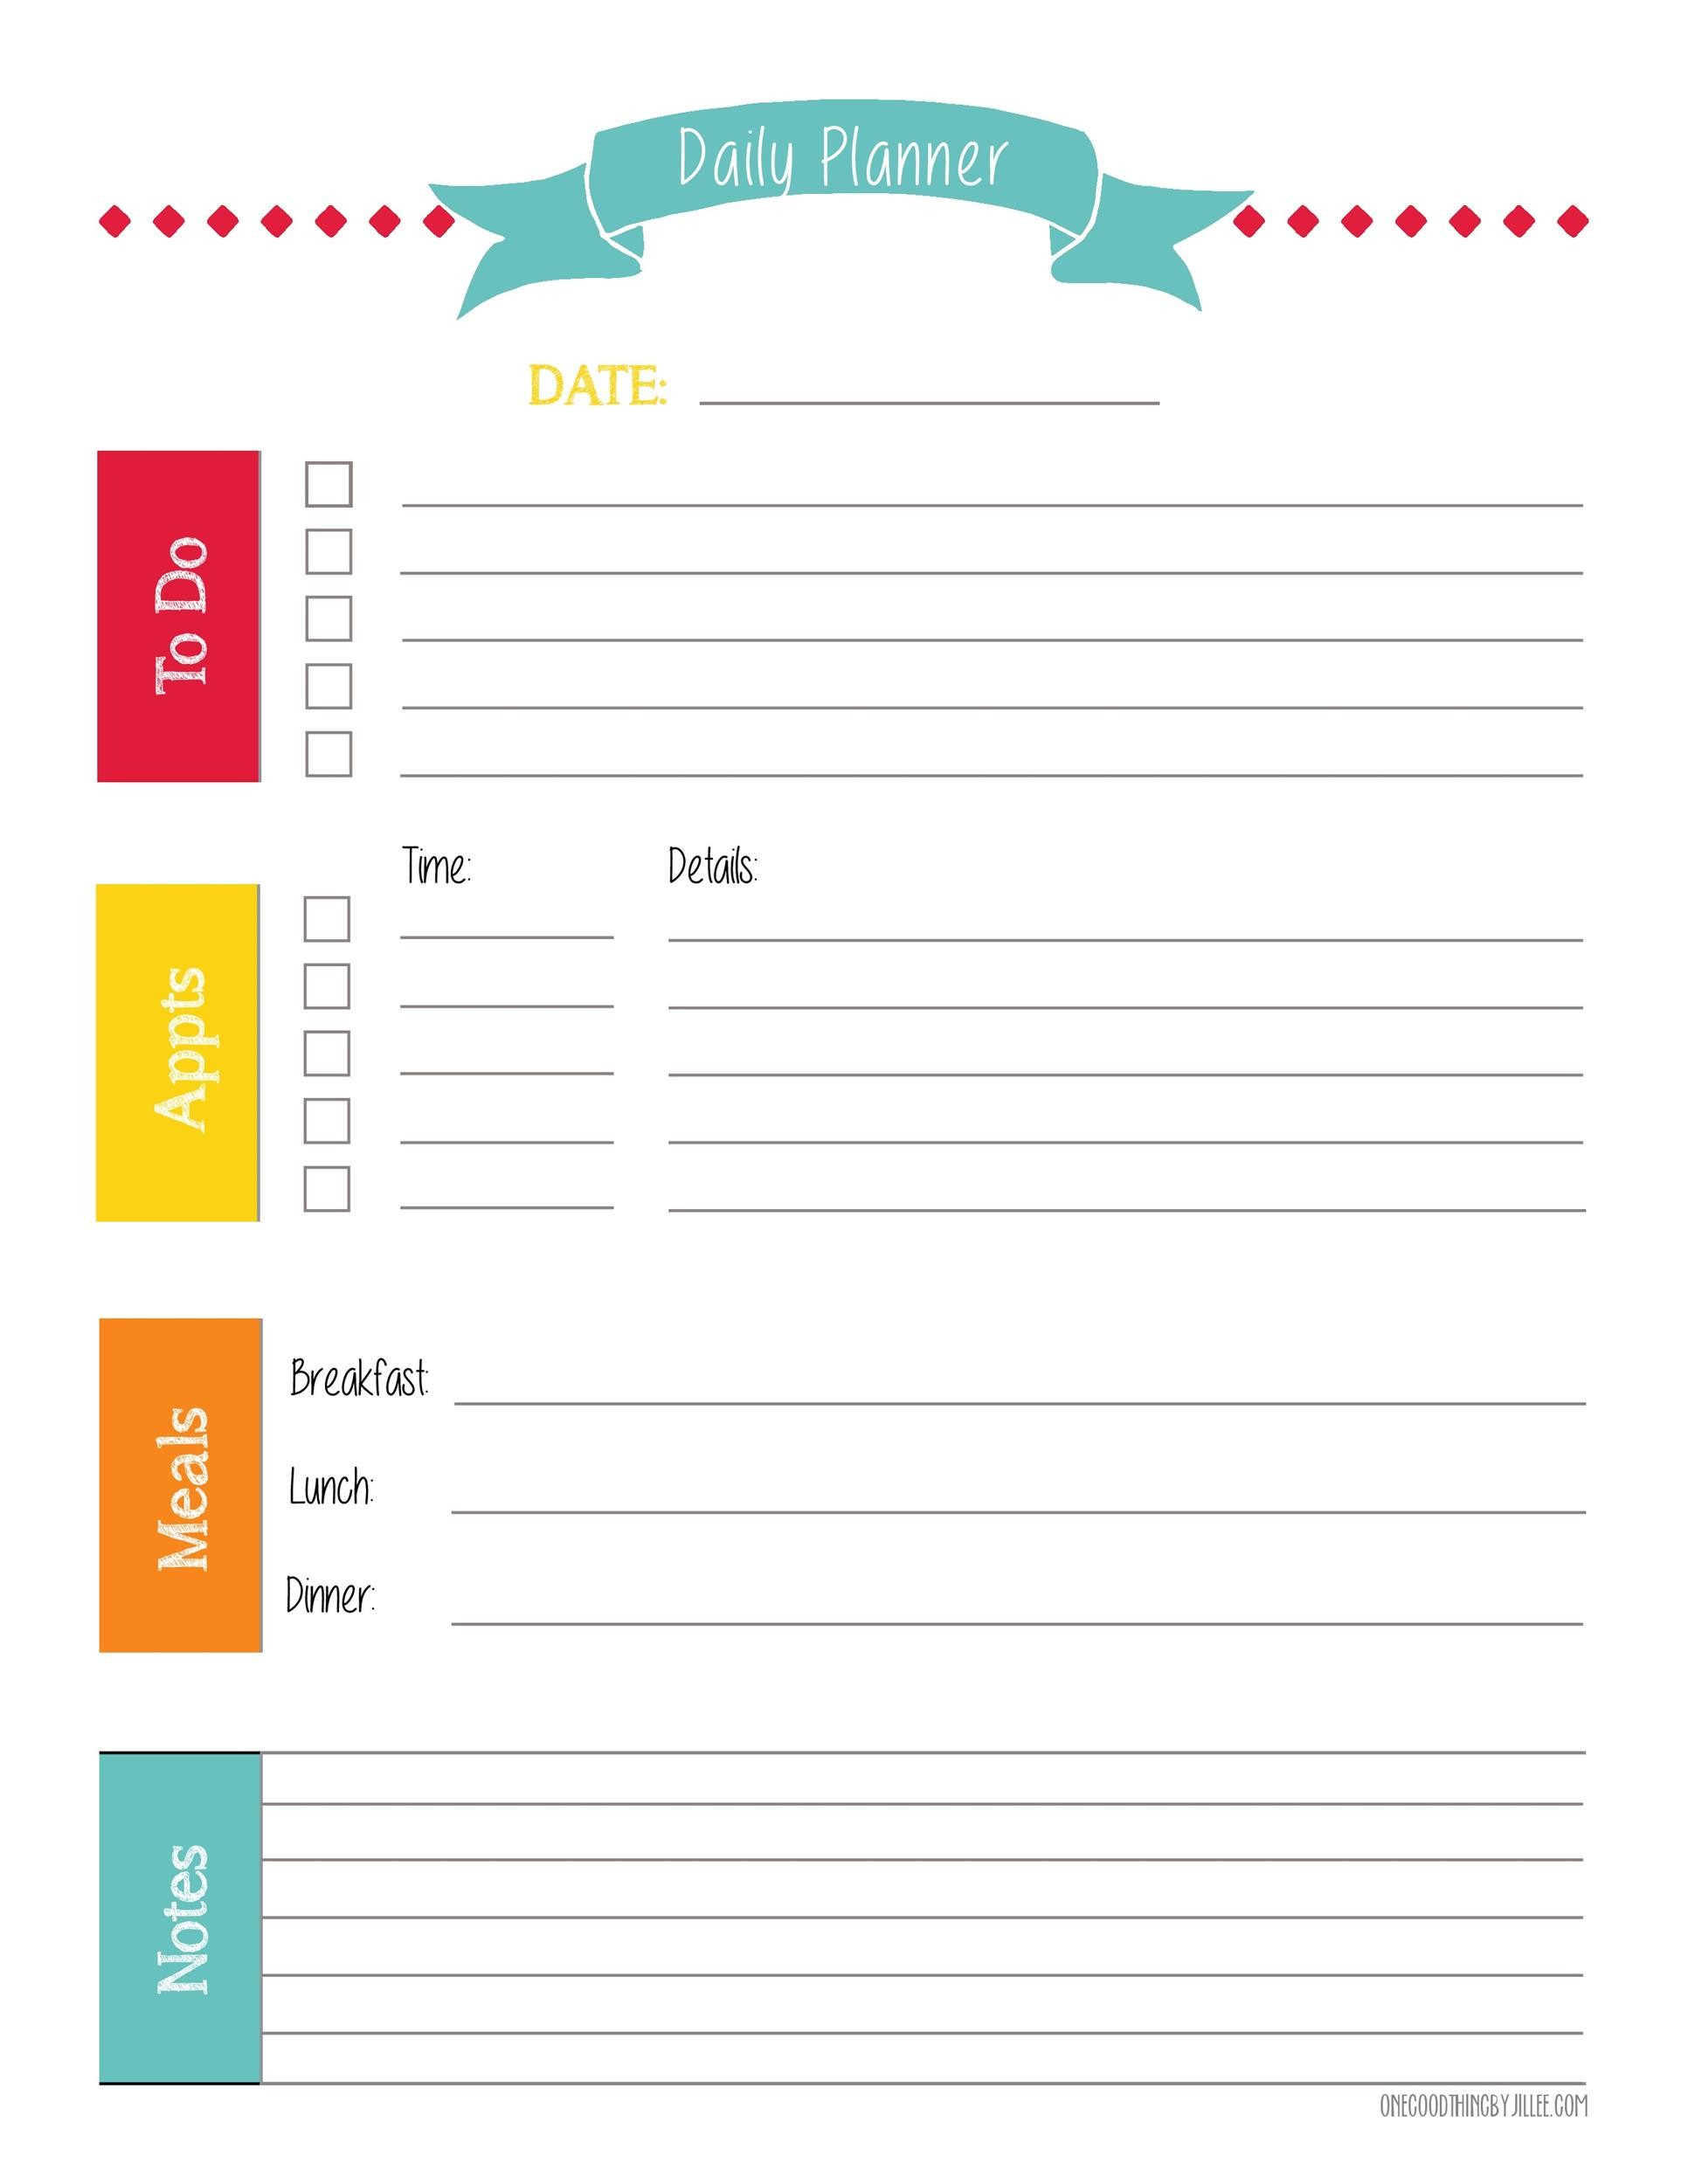 40 printable daily planner templates free template lab for Remodeling planner free online